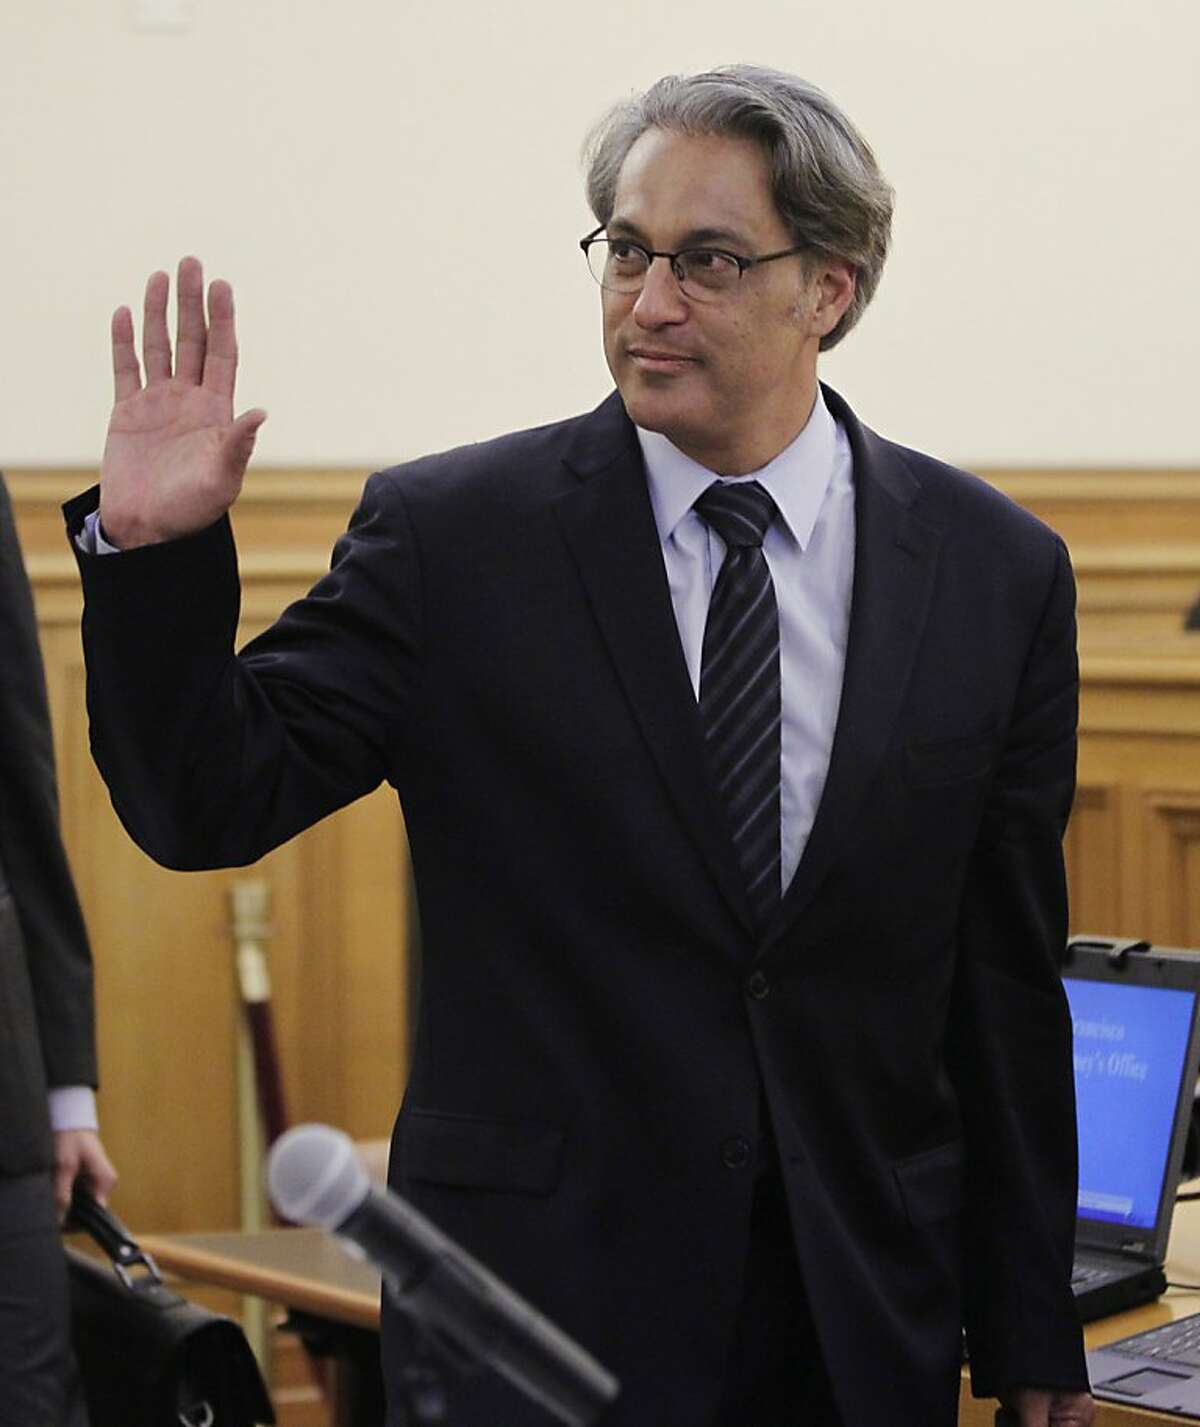 FILE - In this July 18, 2012 file photo, San Francisco Sheriff Ross Mirkarimi waves as he arrives for his misconduct hearing in San Francisco. The decision on whether the San Francisco sheriff is fit to serve after a domestic violence conviction takes a big step forward when a city ethics panel issues its recommendation. Before it makes its recommendation late Thursday Aug. 16 to the Board of Supervisors, which has final say on the matter, the San Francisco Ethics Panel is scheduled Thursday to hear closing arguments from lawyers representing Mirkarimi and Mayor Ed Lee, who is trying to remove the sheriff from office. (AP Photo/Paul Sakuma, File)